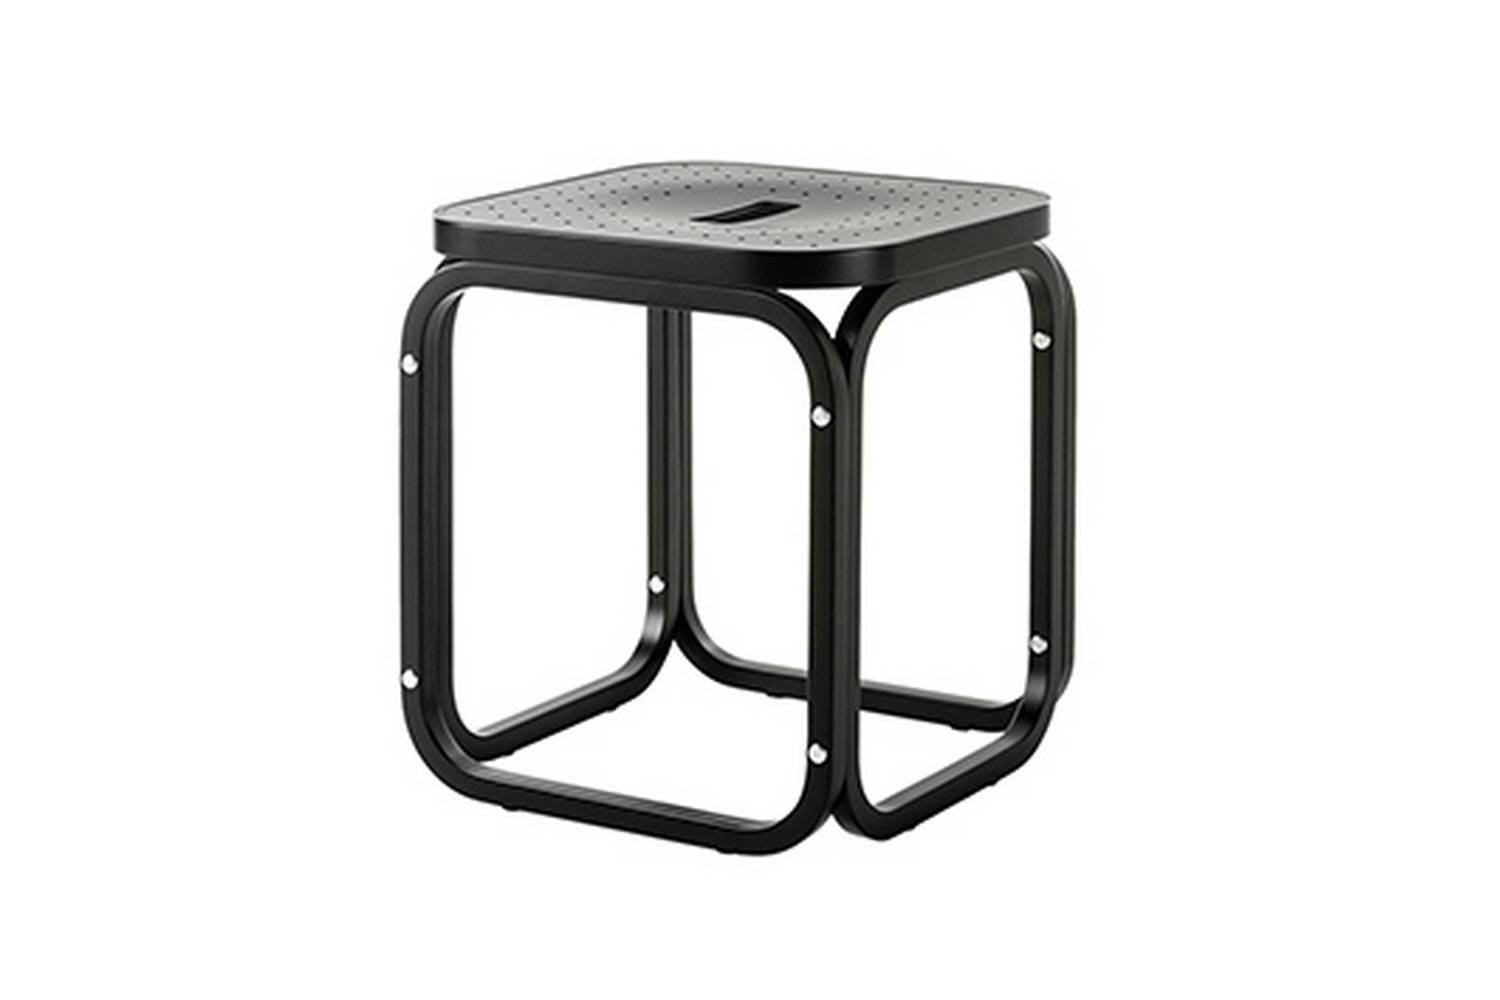 Postsparkasse Stool by Otto Wagner for Wiener GTV Design